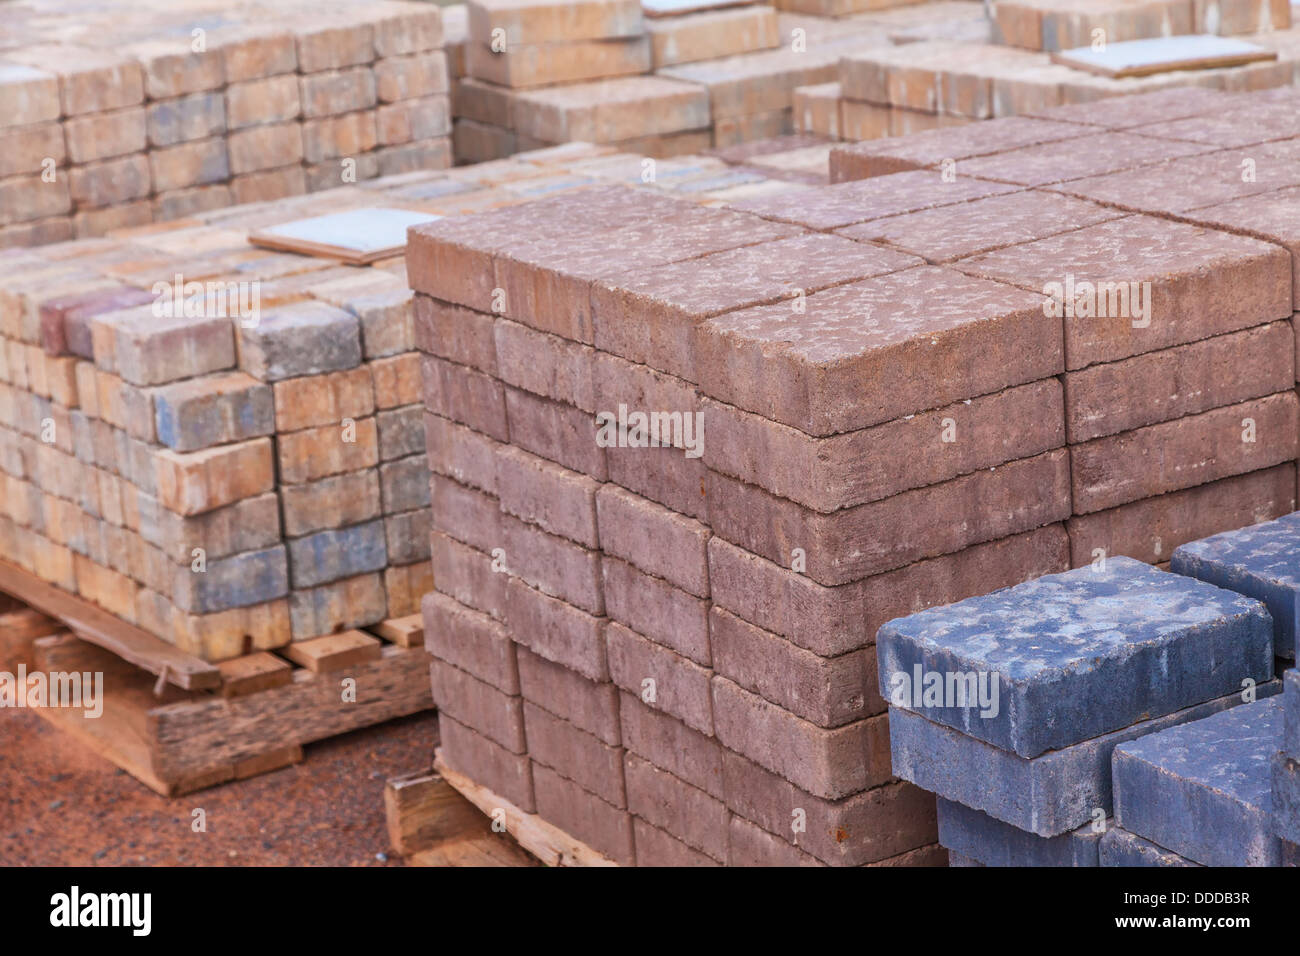 https www alamy com stock photo stacks of various colored concrete pavers paving stone or patio blocks 59915739 html